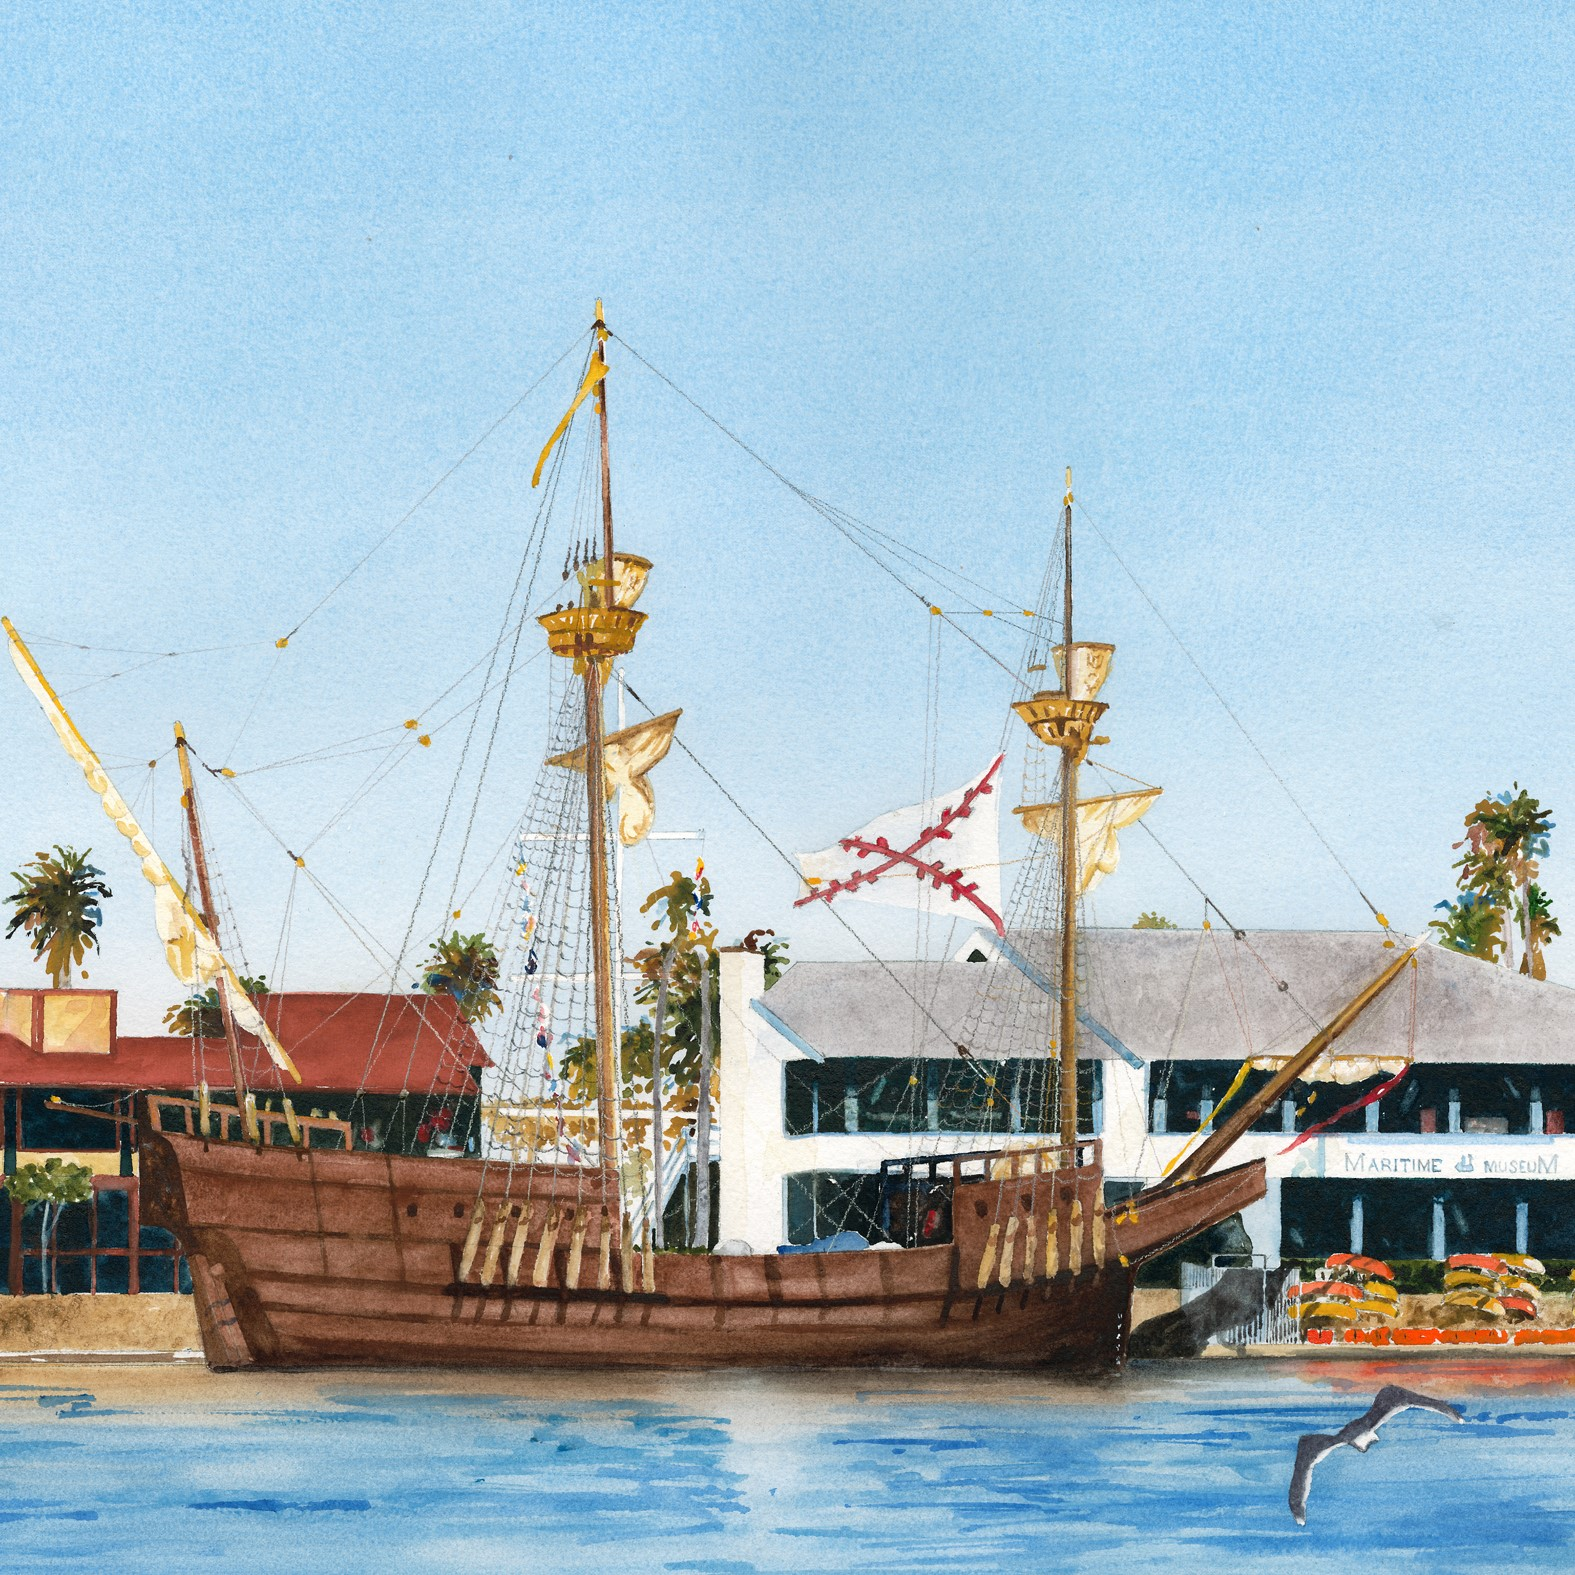 Channel lslands Maritime Museum Exhibit – The Rivers